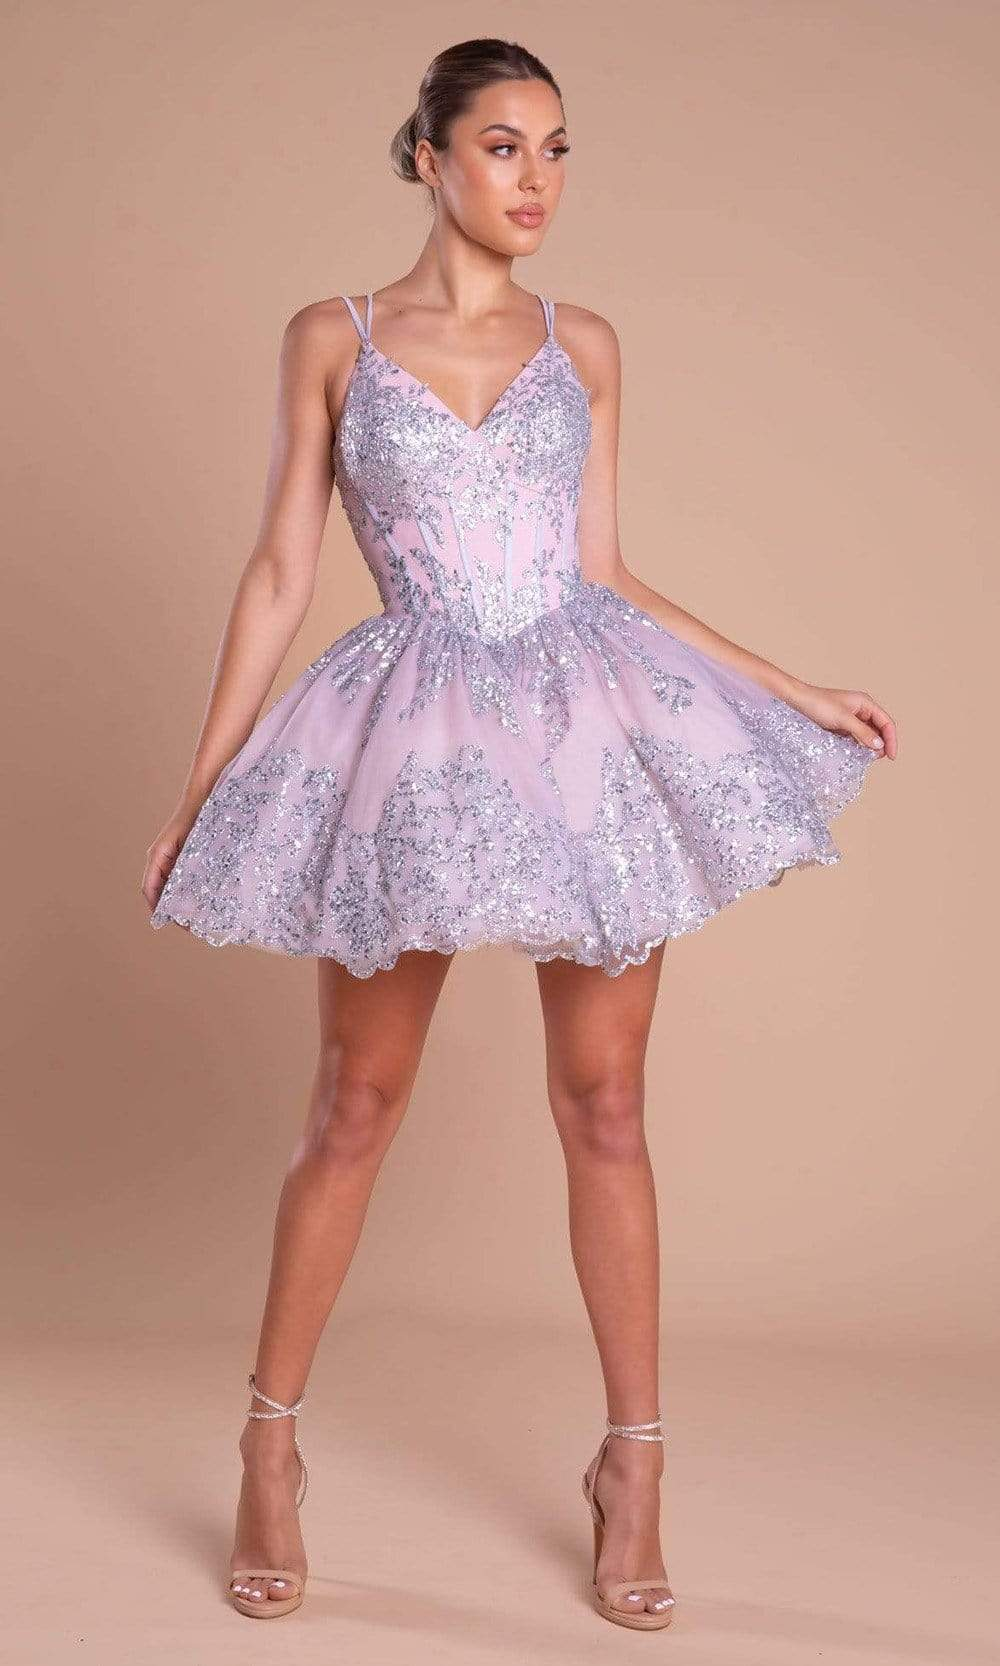 Portia and Scarlett - PS21008 Glitter Accented Short A-Line Dress from Portia and Scarlett